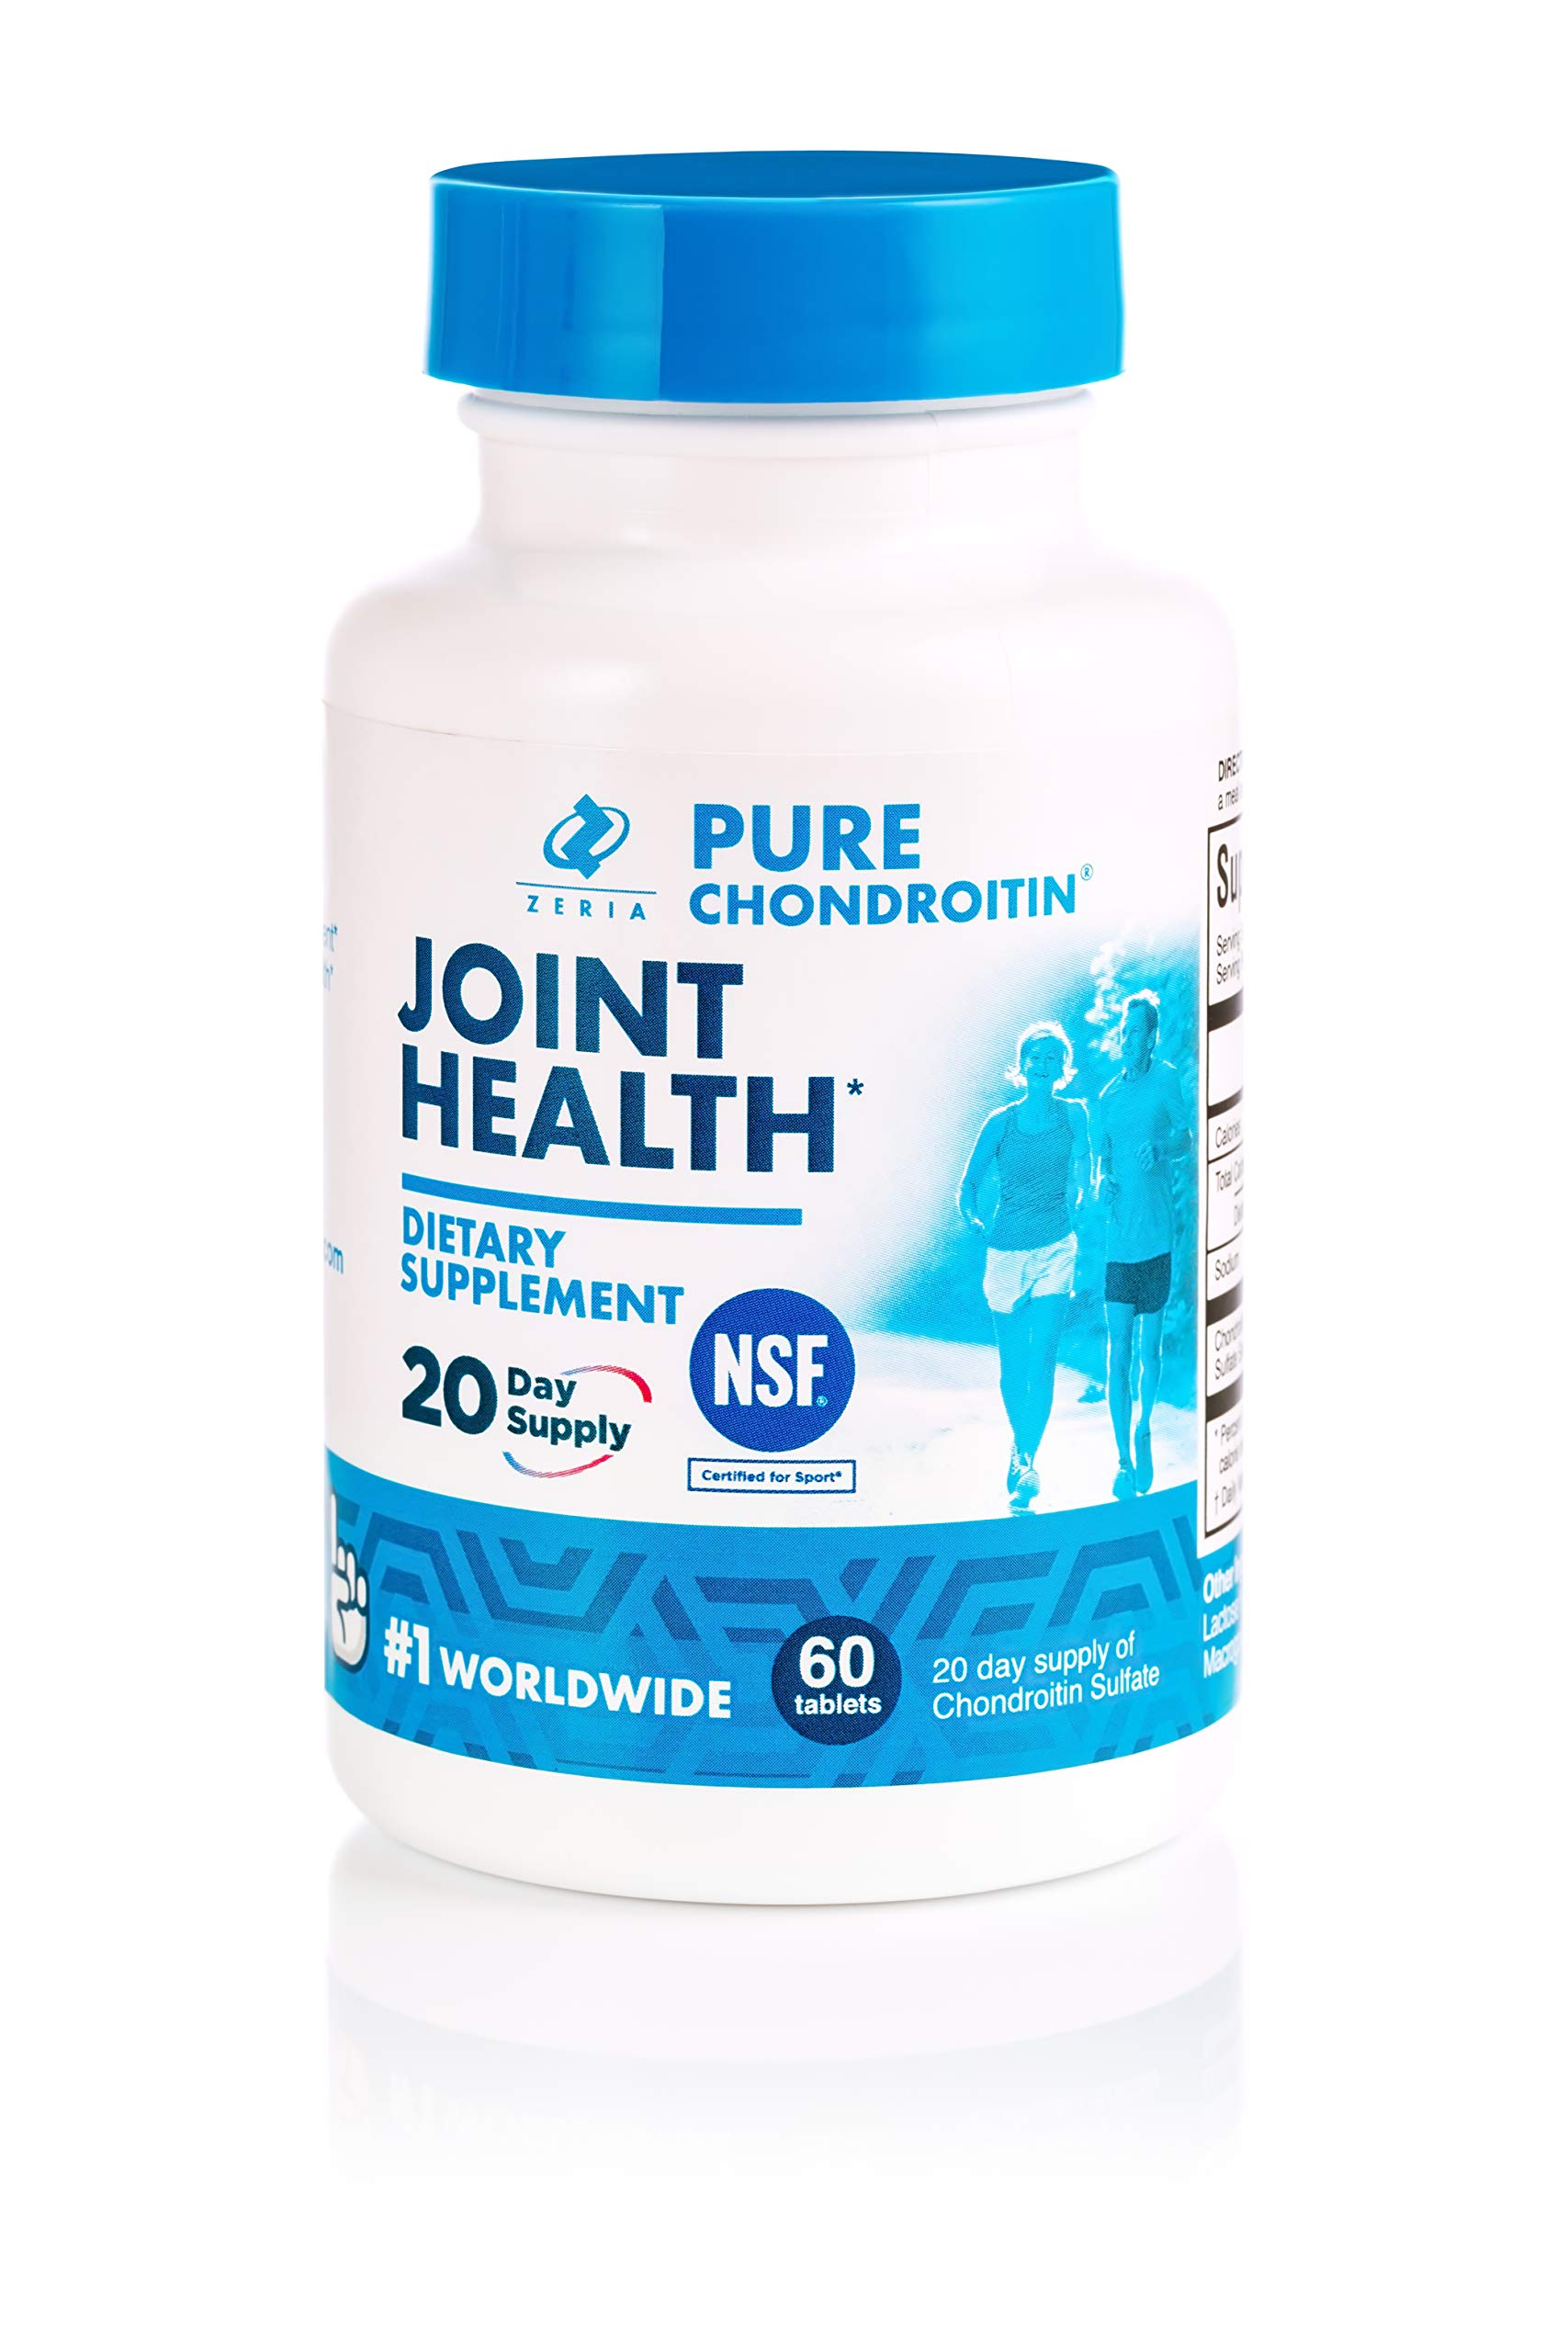 Pure Chondroitin Tablets 90 Count, 30 Day Supply, Pharmaceutical Grade & NSF Certified for Joint Health Supplement with Chondroitin Sulfate by Z Zeria